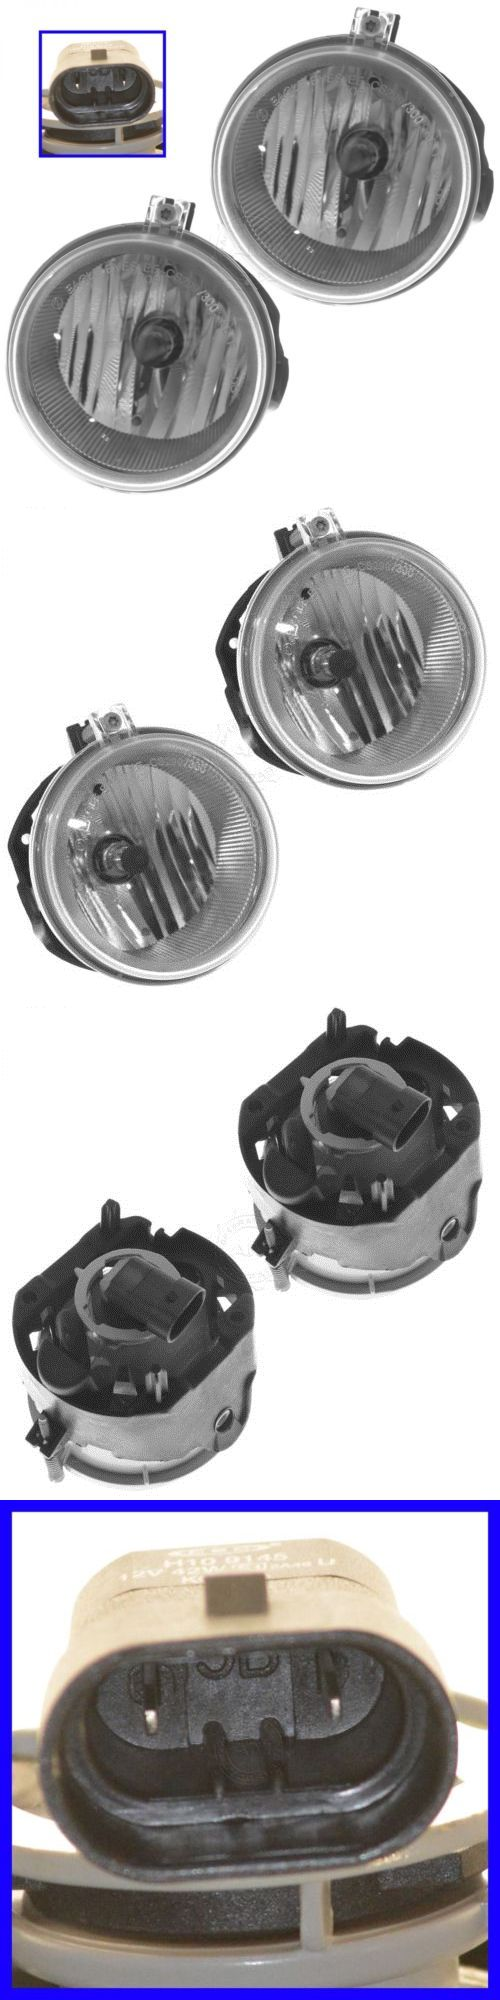 Motors Parts And Accessories: Fog Driving Light Lamp 4805857Aa Pair Set Of 2 For Chrysler Dodge Jeep Car Suv BUY IT NOW ONLY: $38.02